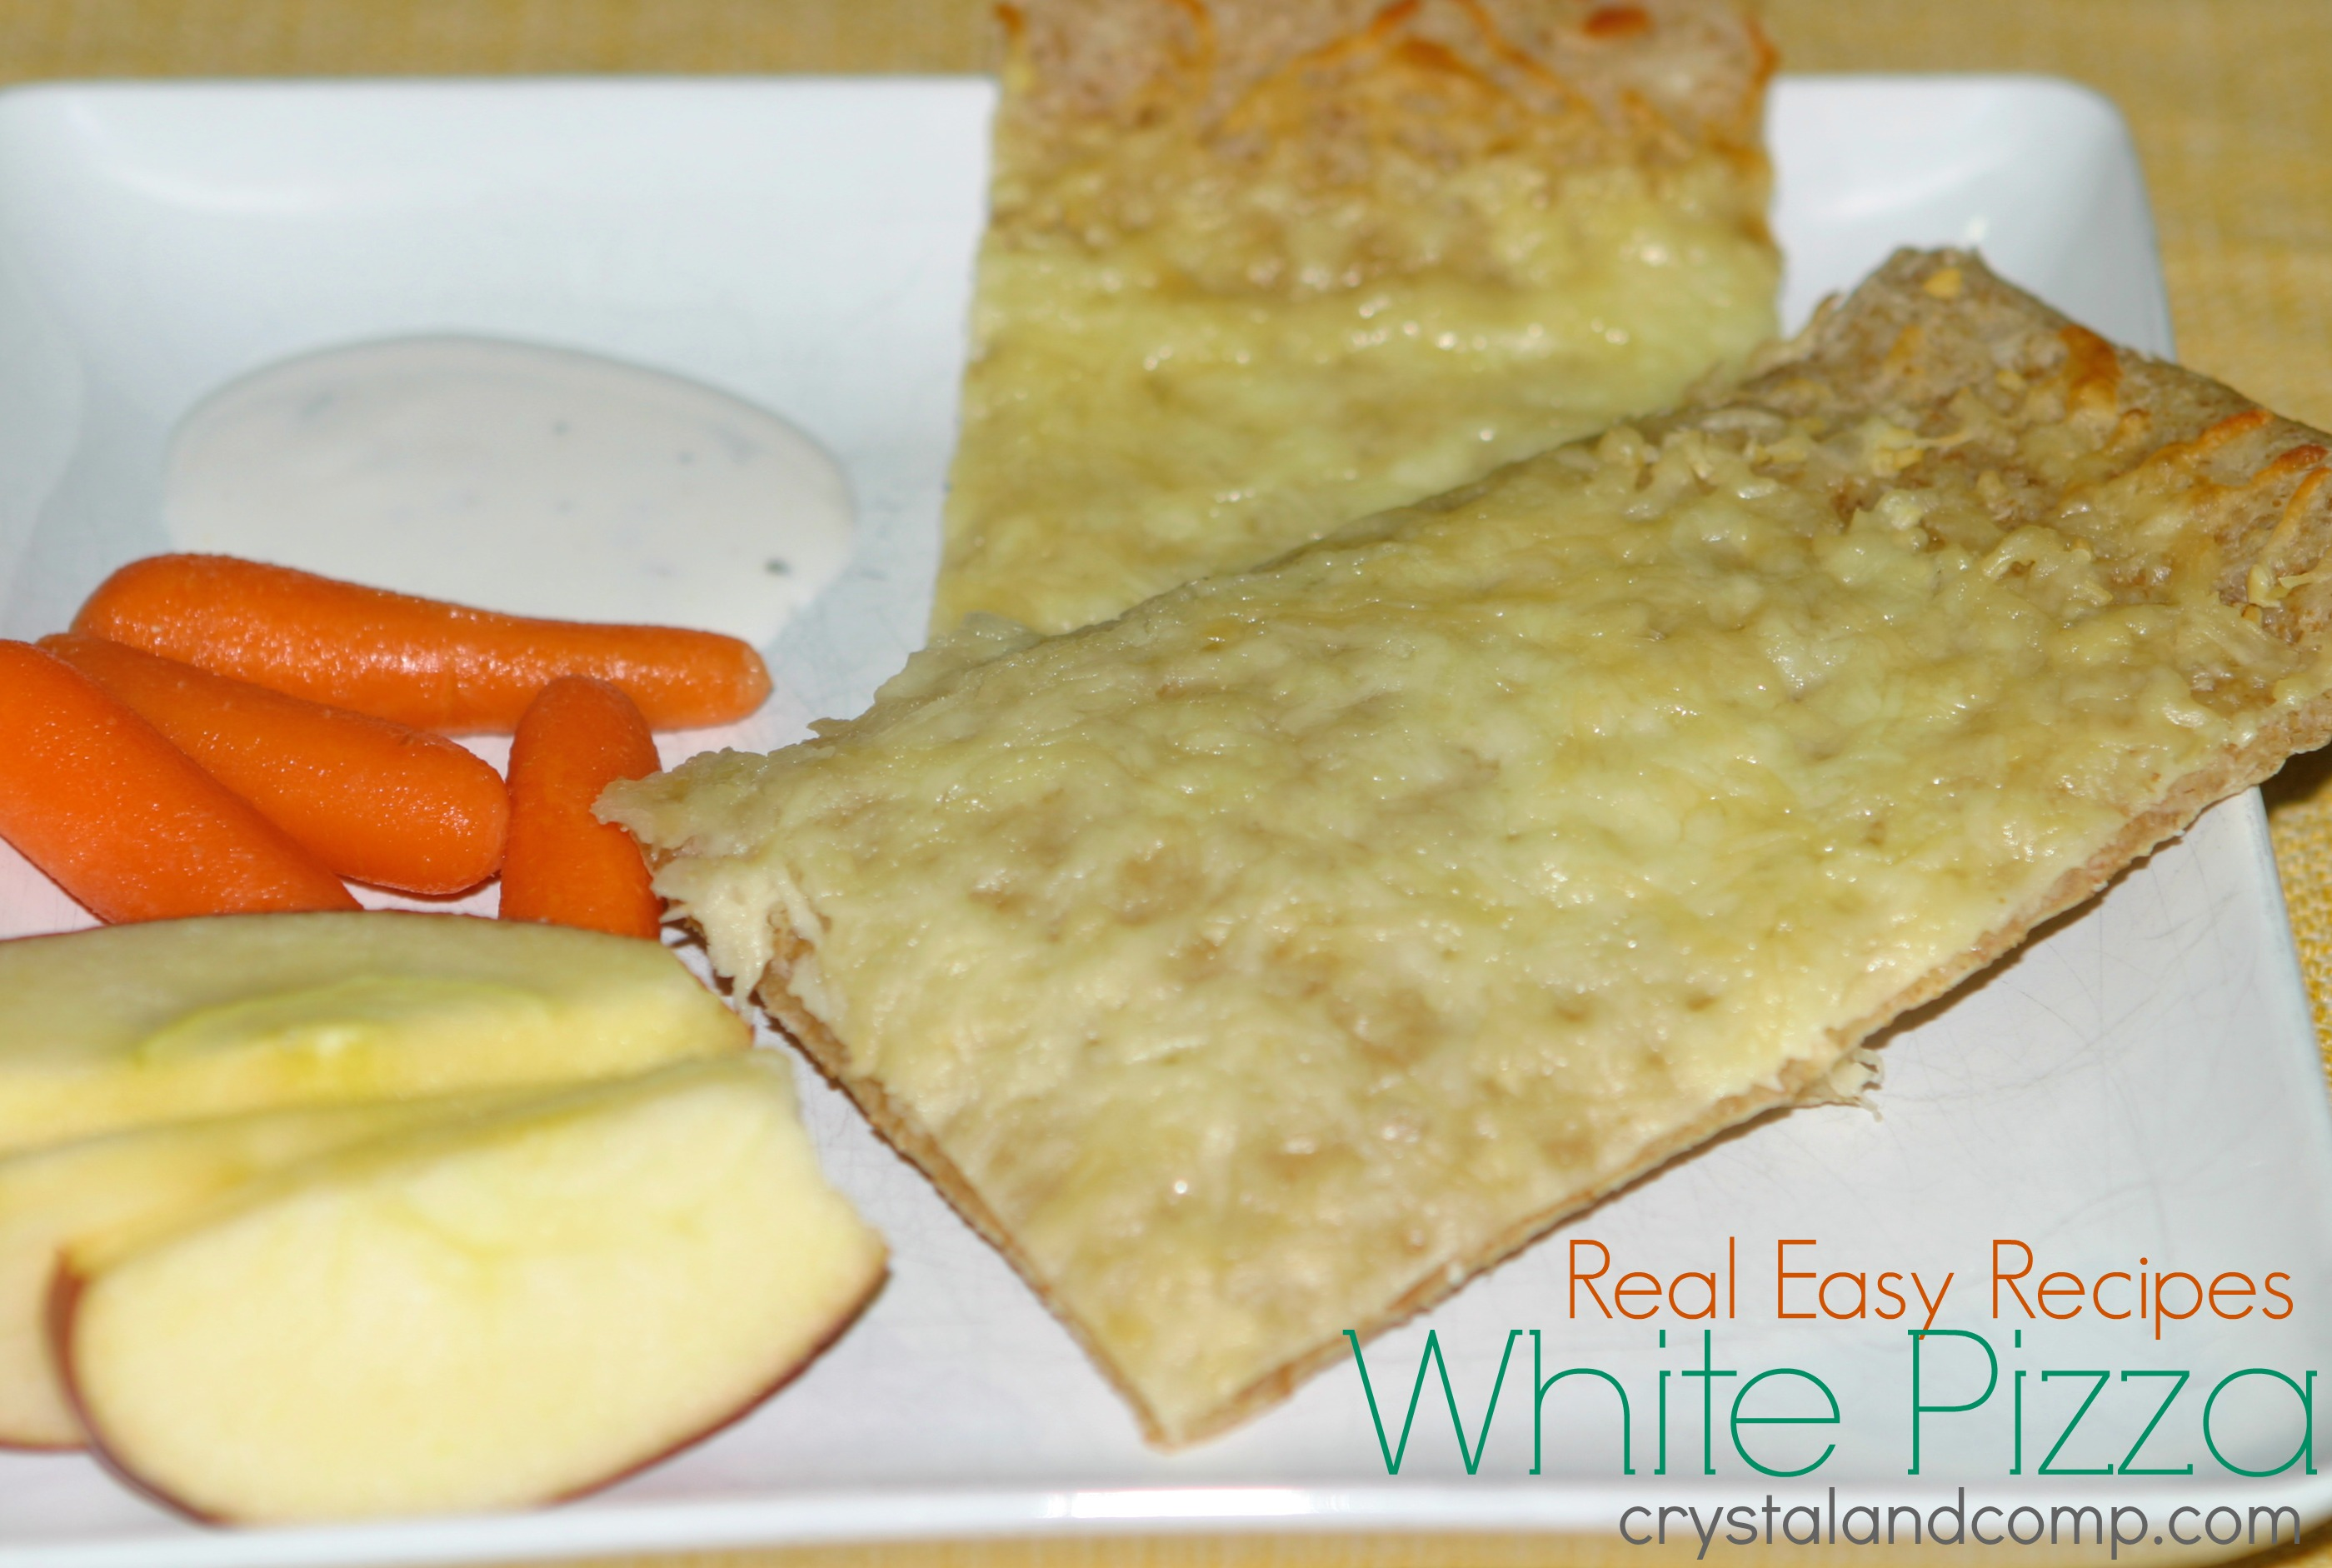 Real Easy Recipes: White Pizza